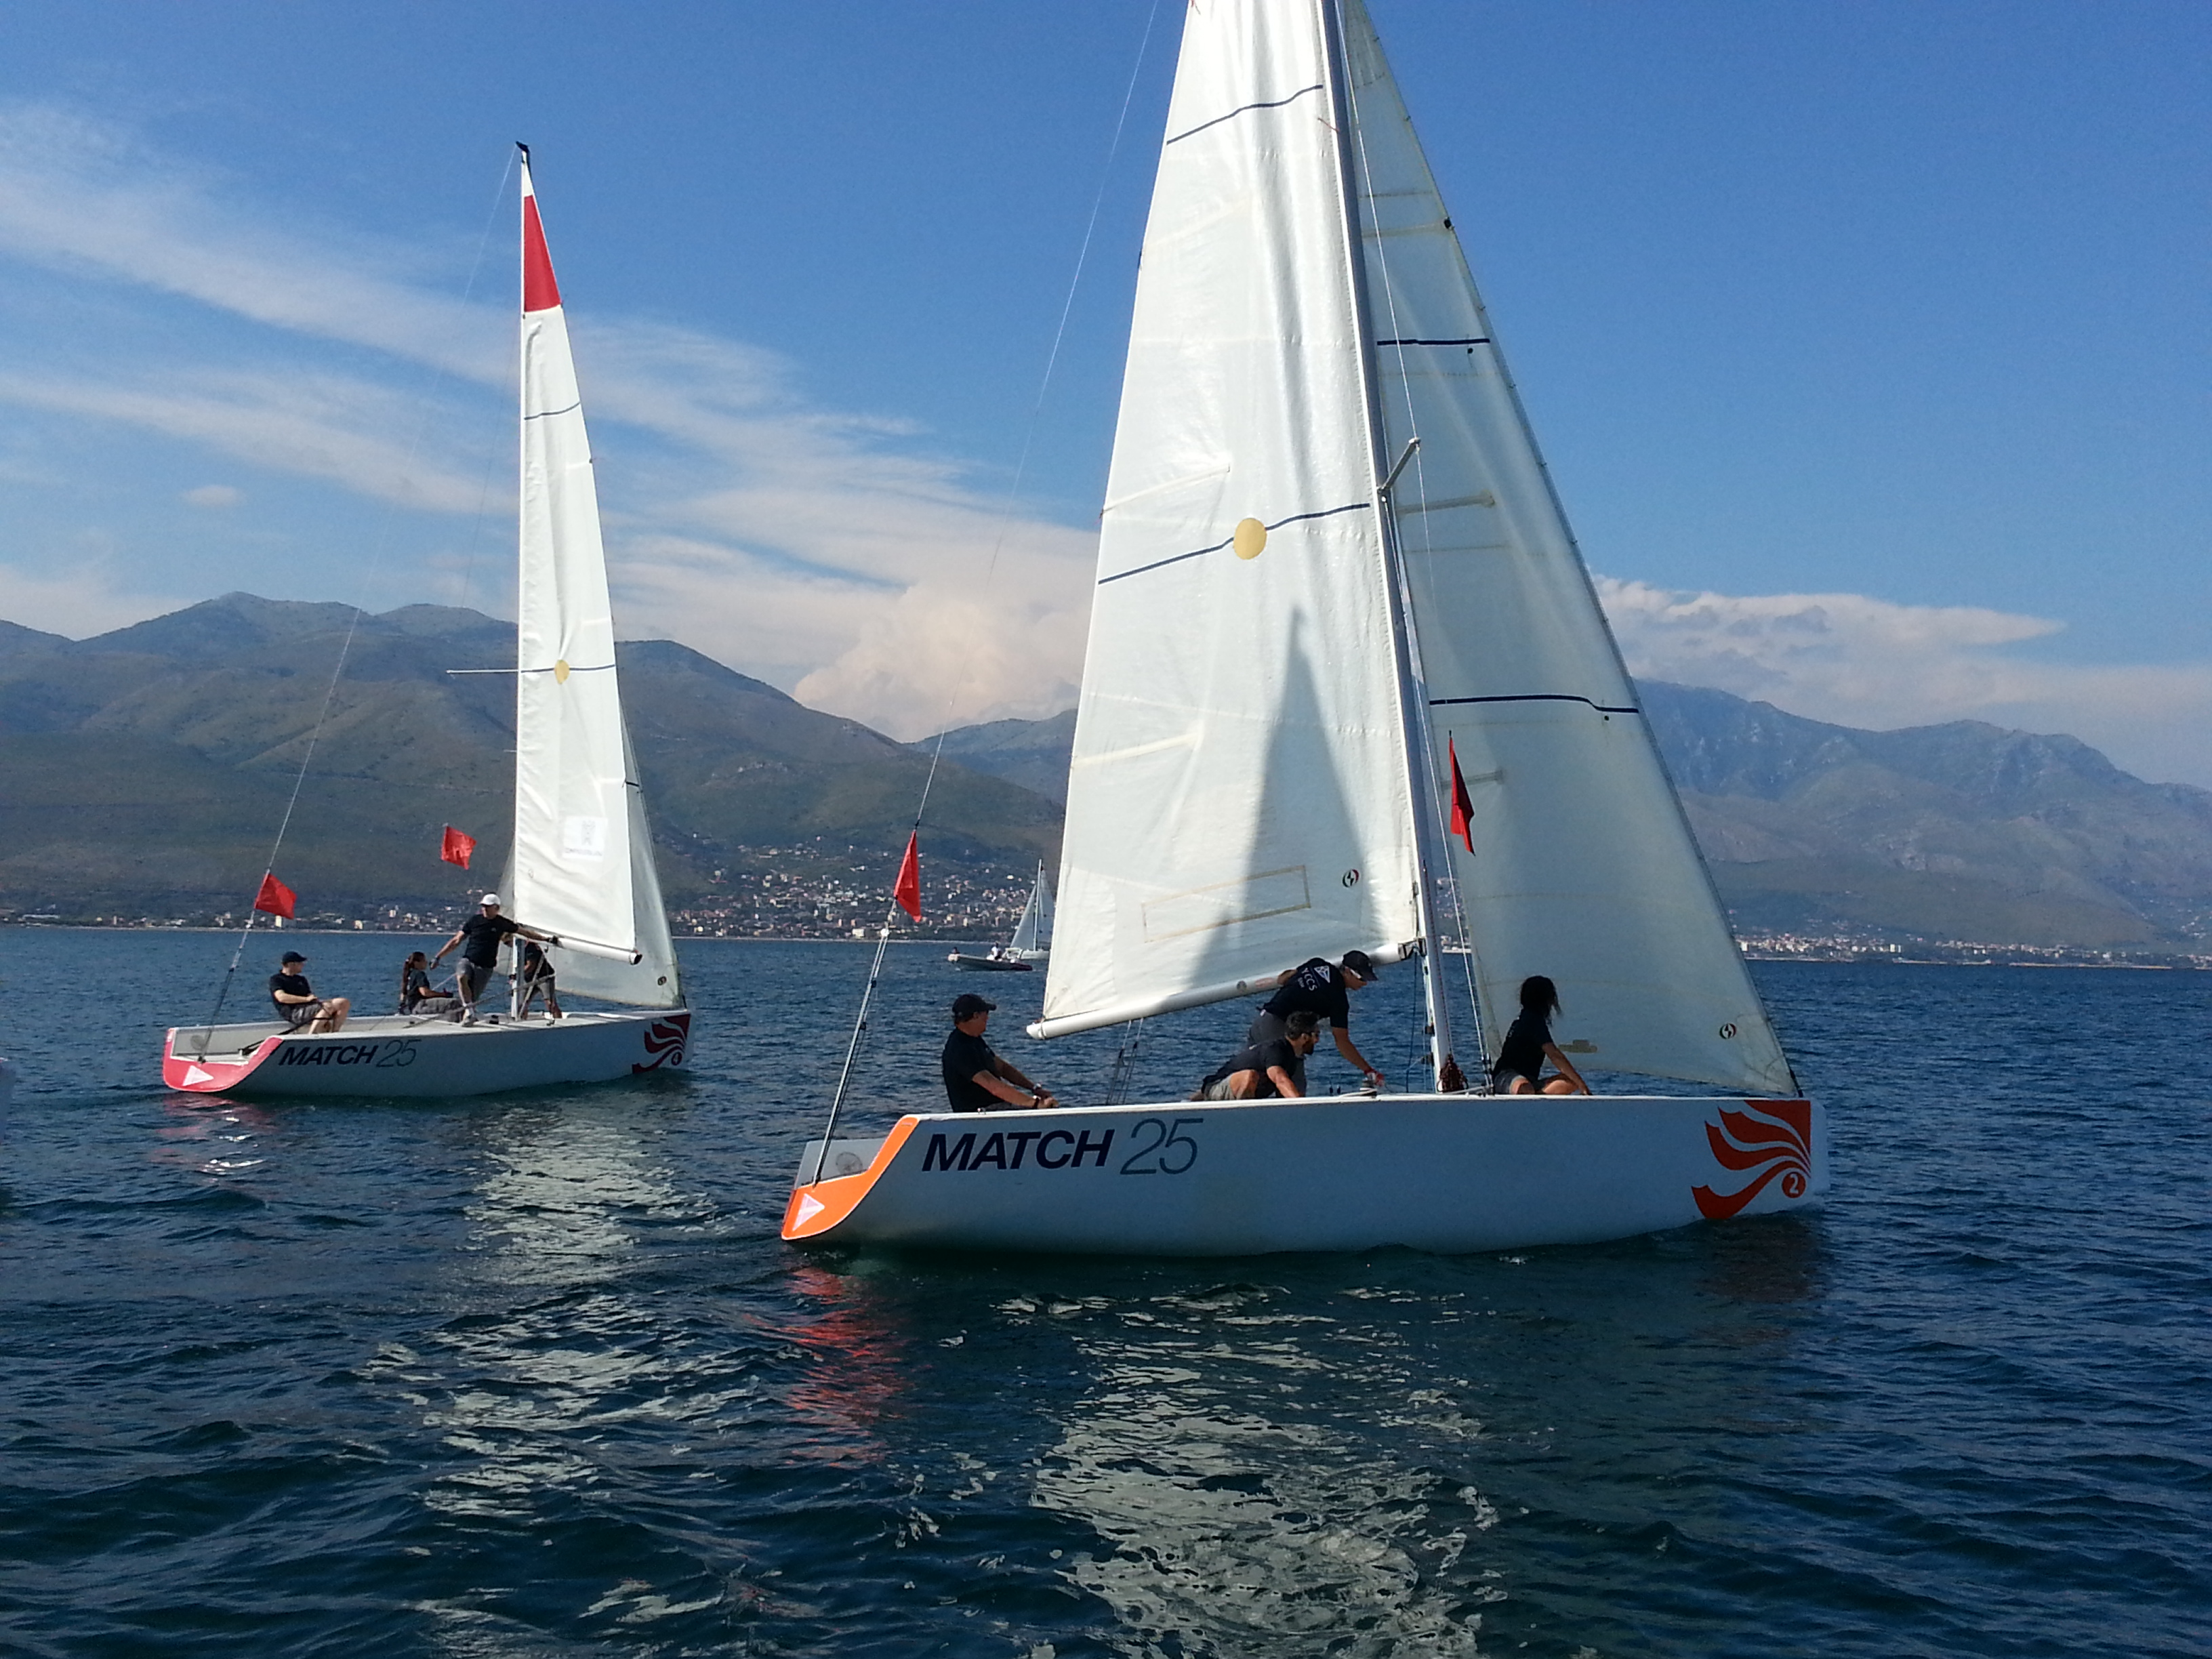 Yacht Club Costa Smeralda clinch 2K Gaeta on final run. - NEWS - Yacht Club Costa Smeralda